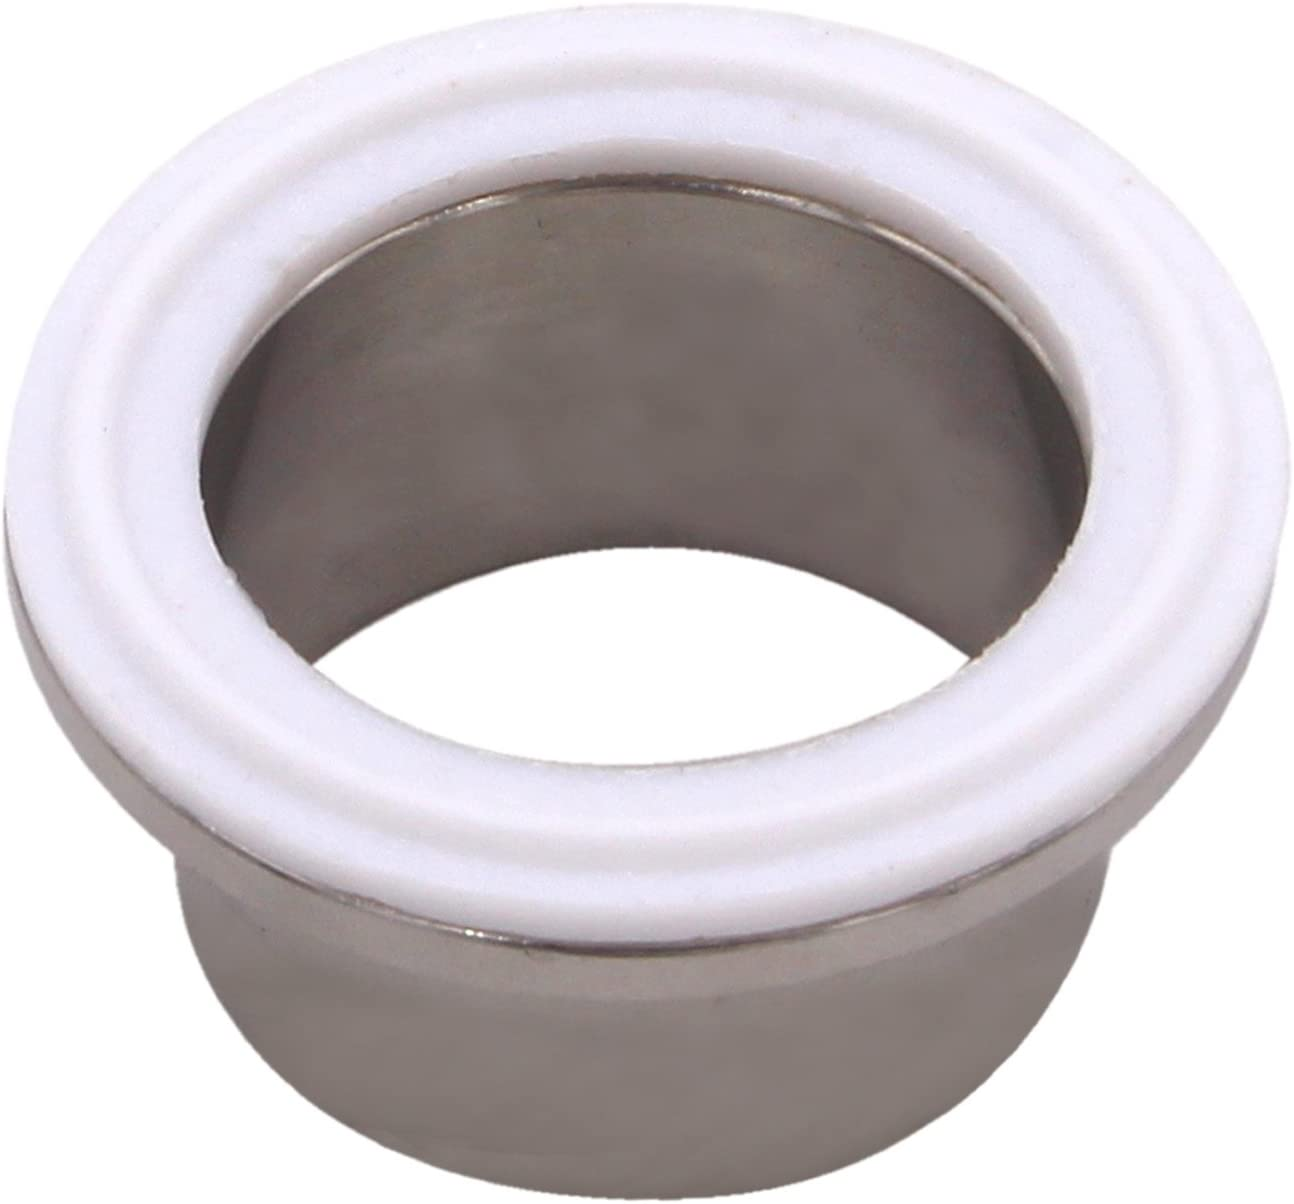 Teflon 1.5 Inch Style Fits OD 50.5MM Sanitary Pipe Weld Ferrule DERNORD PTFE Tri-Clamp Gasket O-Ring Pack of 20